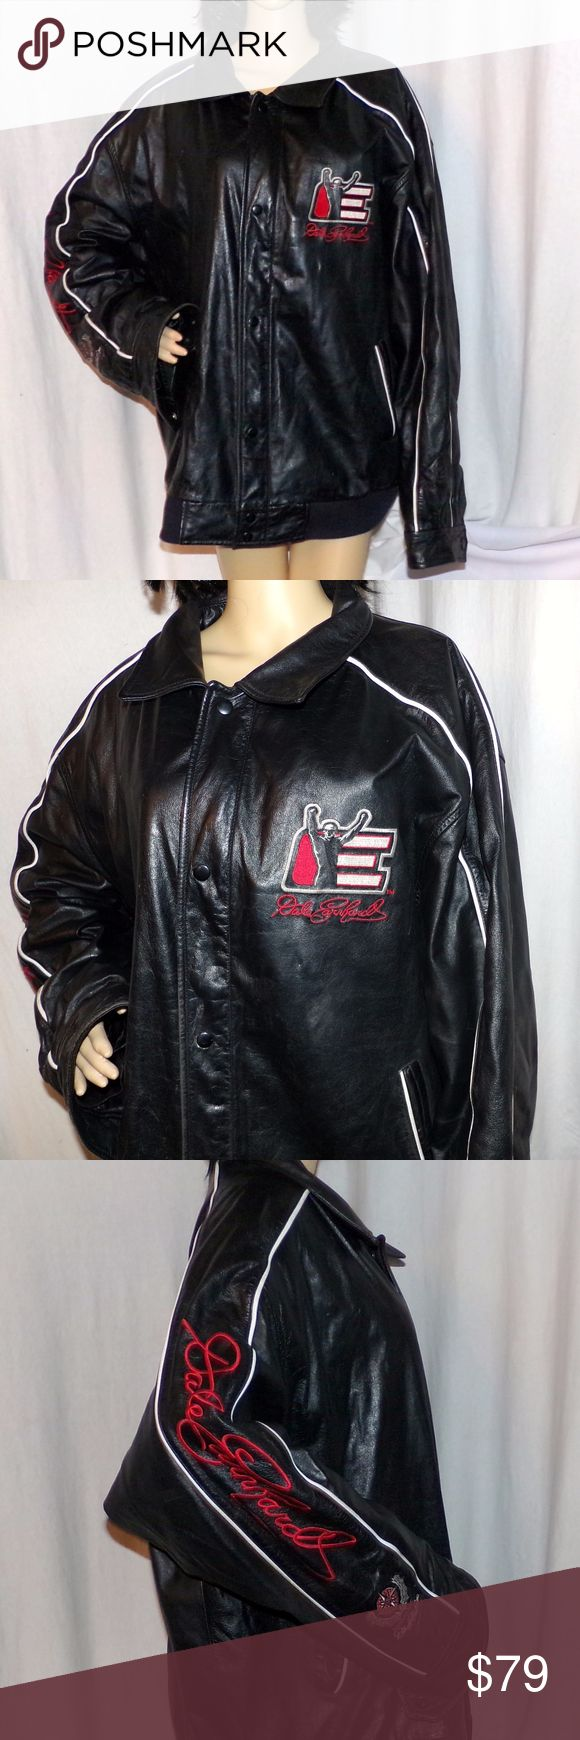 Dale Earnhardt 3 Leather Jacket Leather NASCAR Dale Earnhardt 3 Leather Jacket Real Leather NASCAR Rare The Intimidator Heavily Embroidered size XXL LOW & Fast Shipping. This is one amazing jacket 100 percent Leather and made by Wilson's leather and Chase Authentics the biggest names in leather and NASCAR. The lining is made of 100 Polyester. It is in Very good to Excellent condition. This is heavy leather and has snaps and a zipper to keep out the weather and as you know leather is the only…